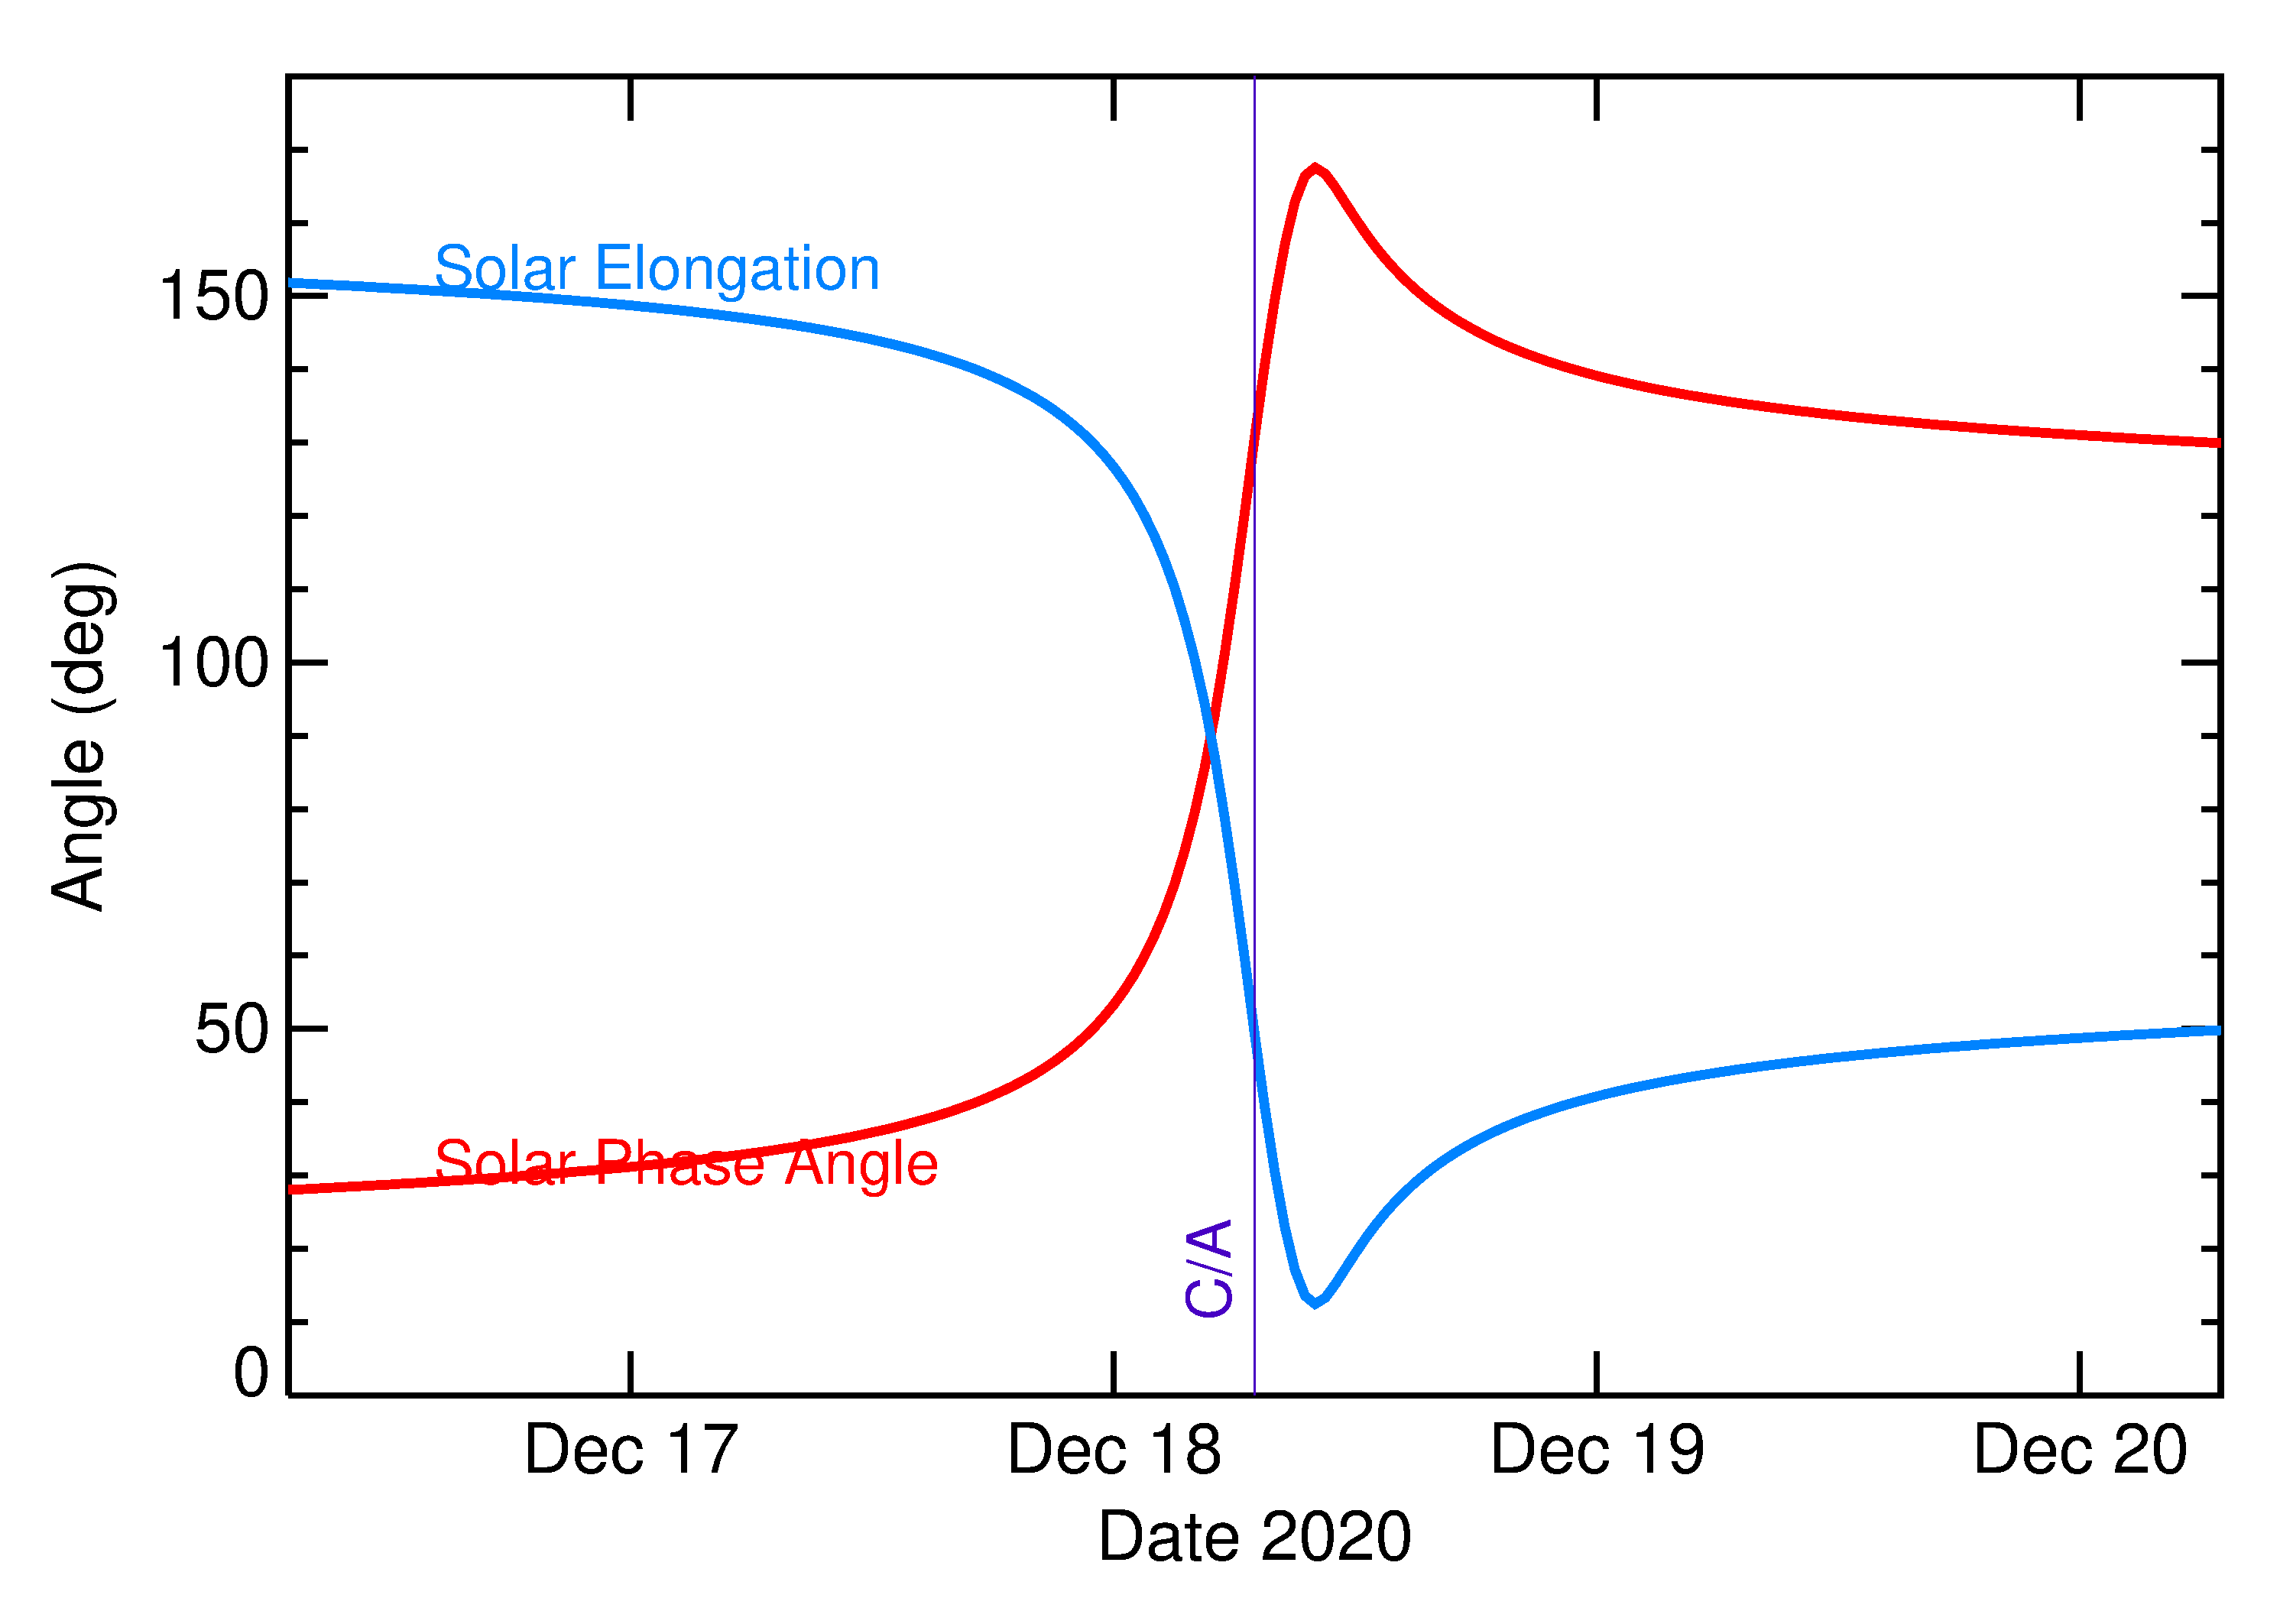 Solar Elongation and Solar Phase Angle of 2020 XX3 in the days around closest approach